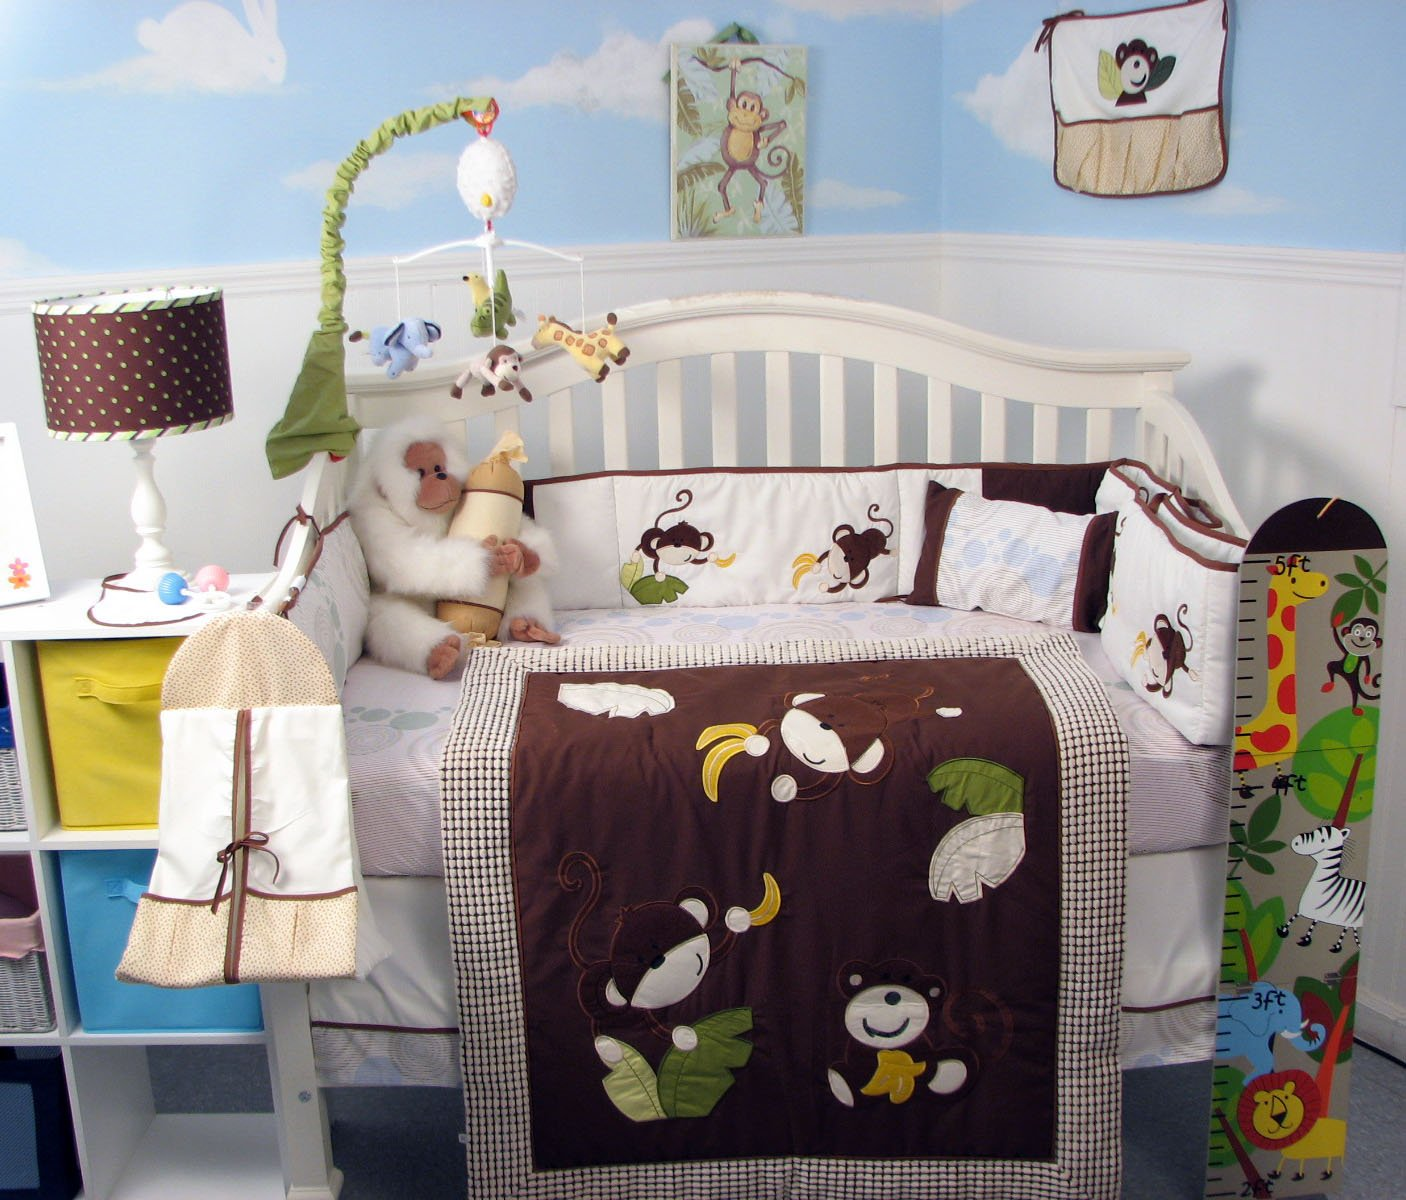 SoHo Monkey Business Bedding Baby Crib Nursery Bedding Set B00BF1STME Changing 13 pcs included Diaper Bag with Changing Pad & Bottle Case by SoHo Designs B00BF1STME, オオアライマチ:82641b1e --- ijpba.info